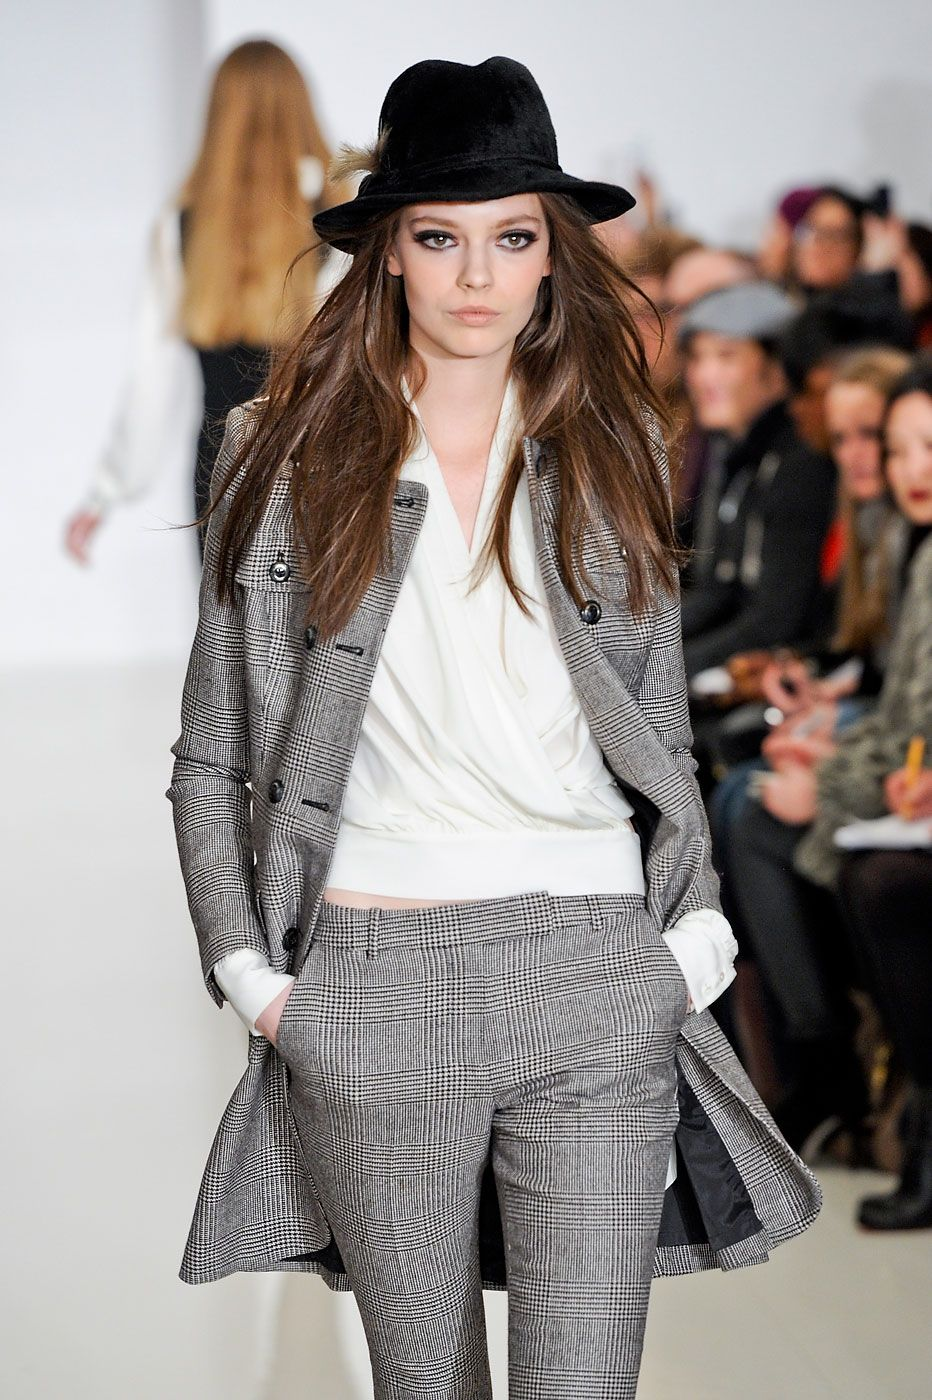 Fall winter 2013 fashion trends for women - Fall Winter 2012 2013 Hat Trends